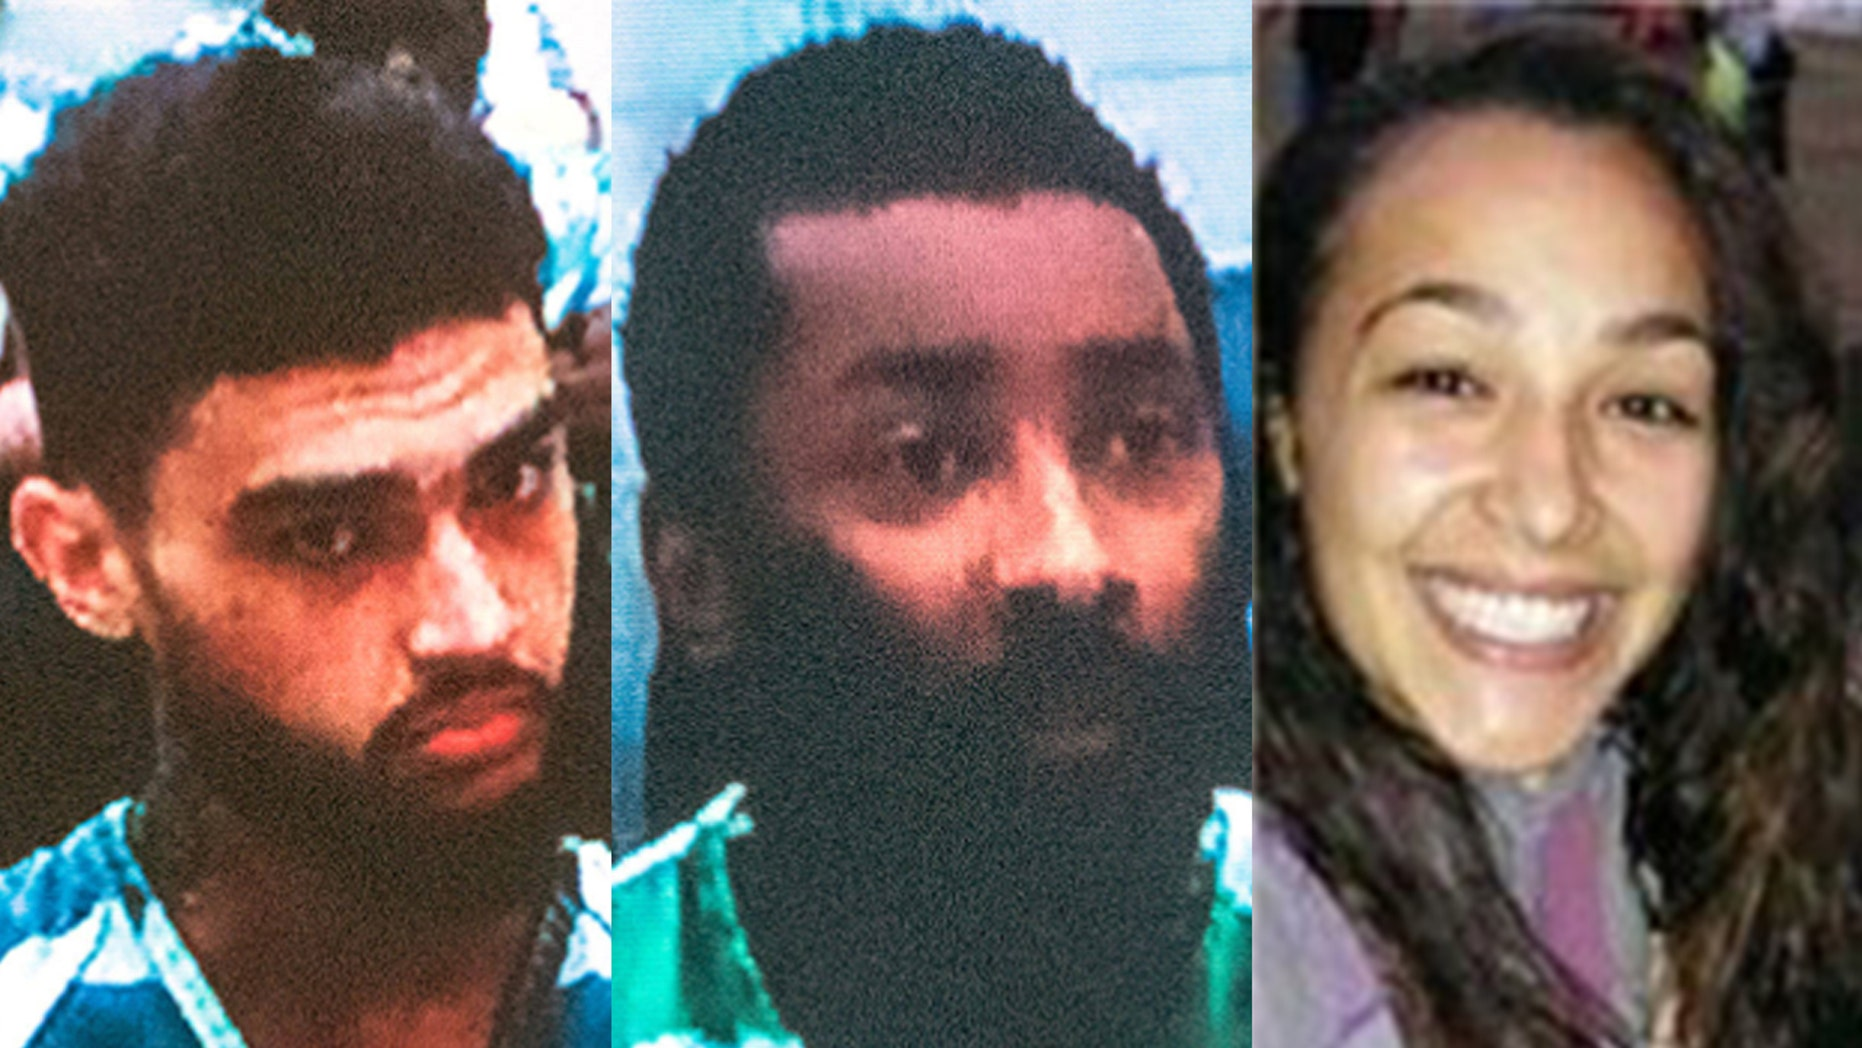 Jerradon Phelps, left, and Kevin Lewis, center, face murder charges in a murder-for-hire plot in which Alisha Canales-McGuire, 24, was fatally shot in Everett, Wash., in 2017.